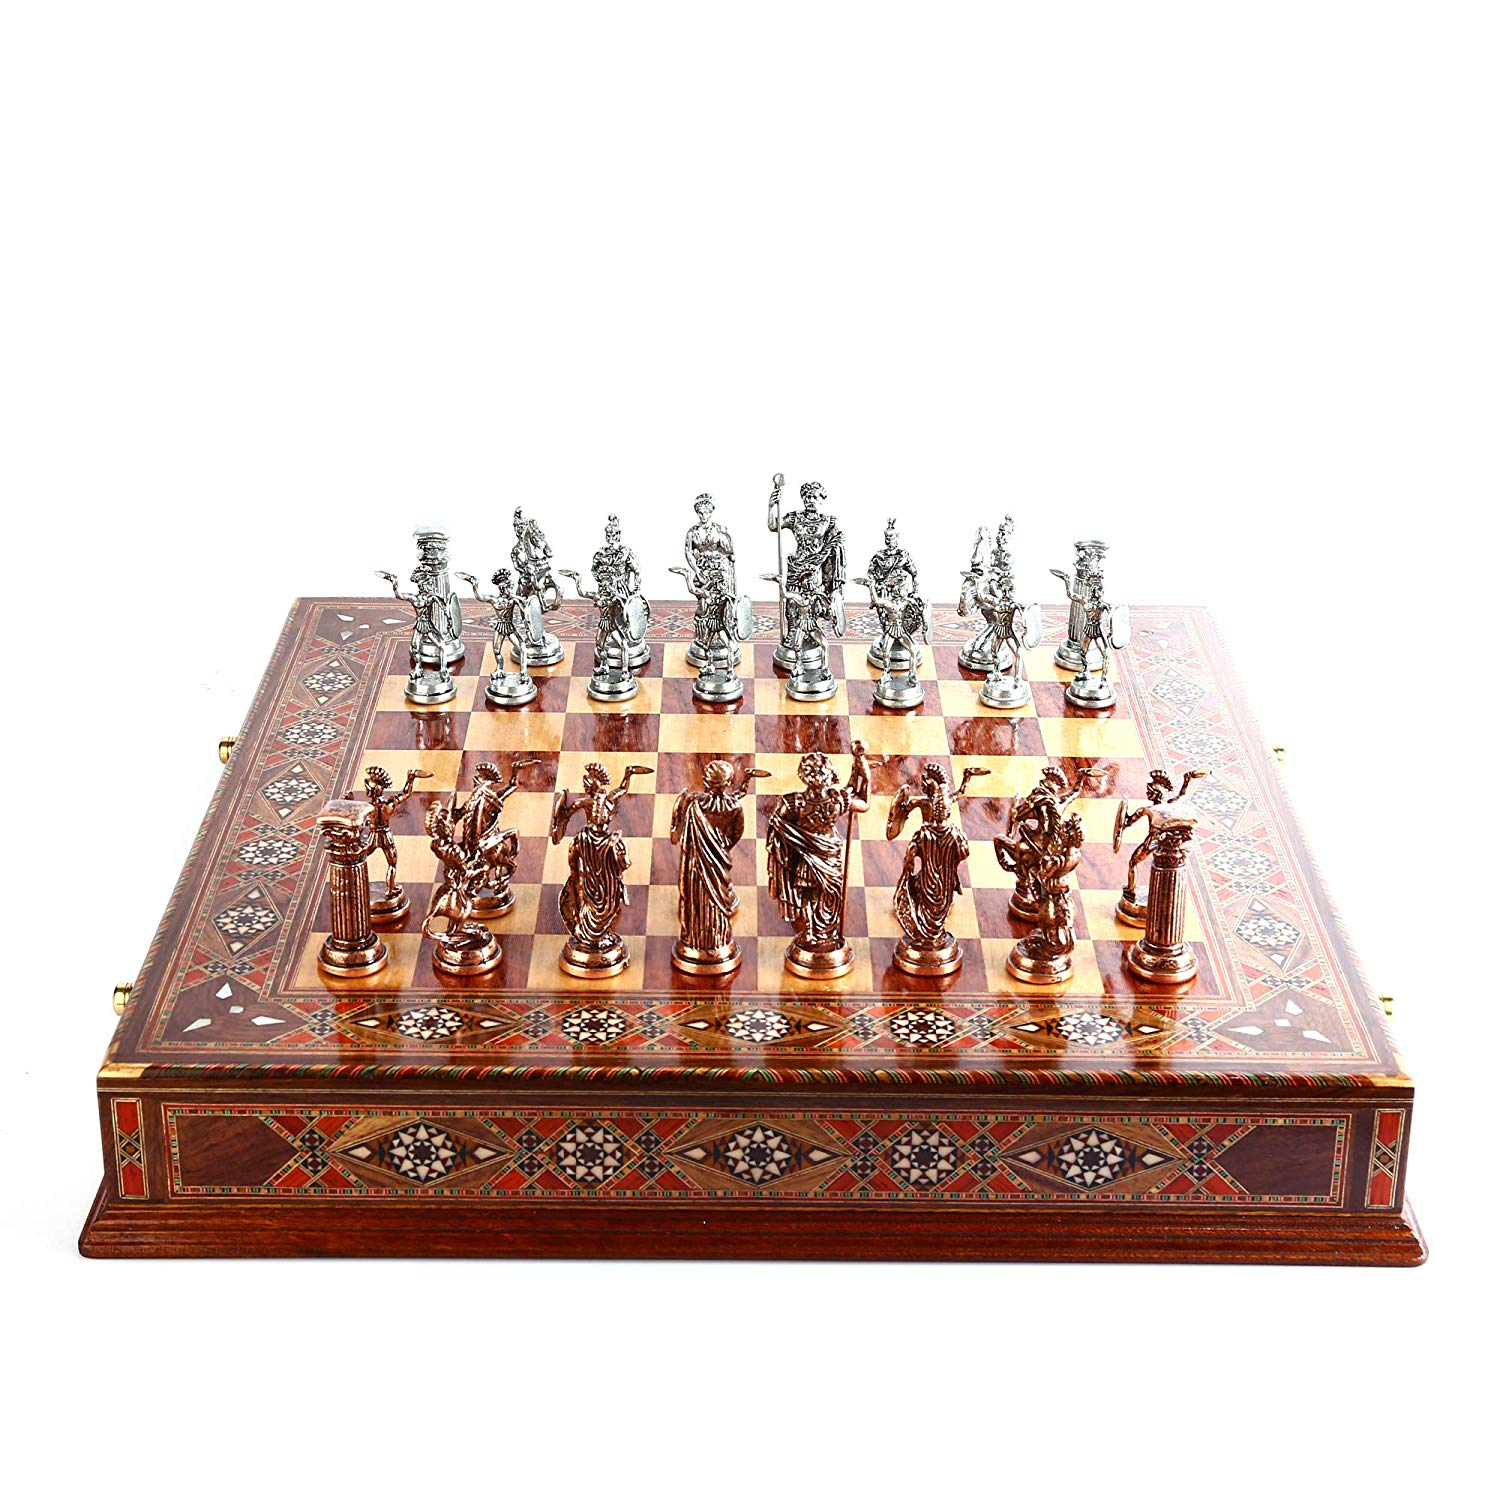 Antique Copper Rome Figures Metal Chess Set,Handmade Pieces,Natural Solid Wooden Board Original Pearl,Storage Inside King 10 Cm